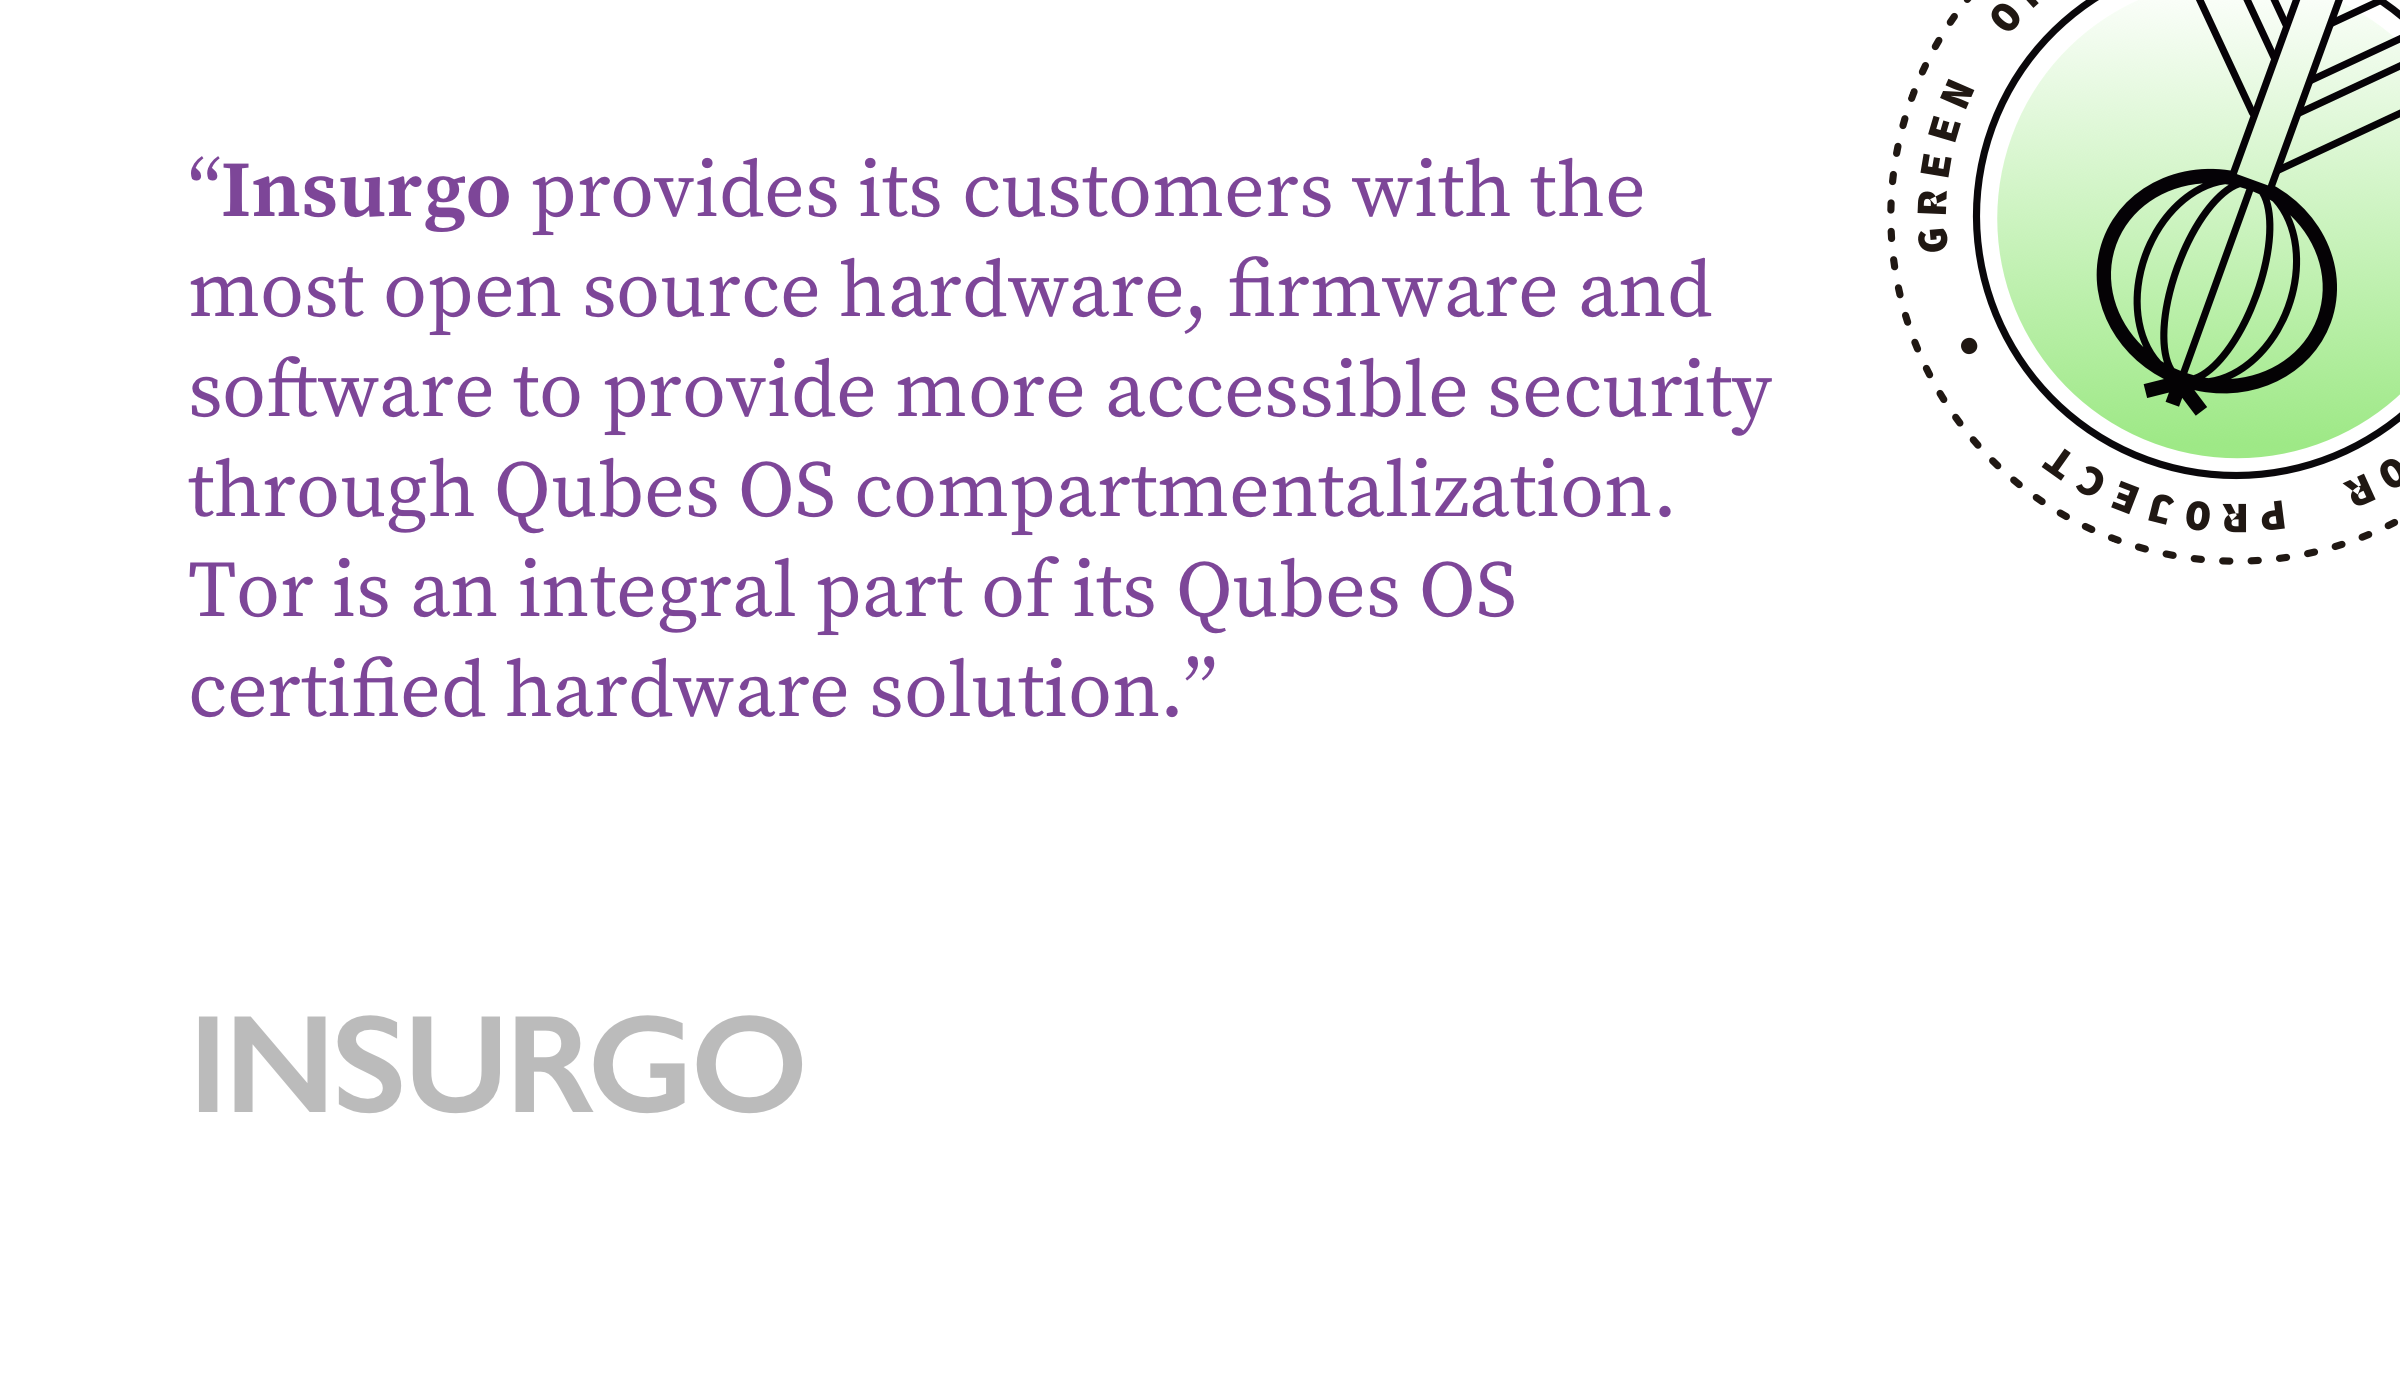 Insurgo provides its customers with the most open source hardware, firmware and software to provide more accessible security through Qubes OS compartmentalization. Tor is an integral part of its Qubes OS certified hardware solution.